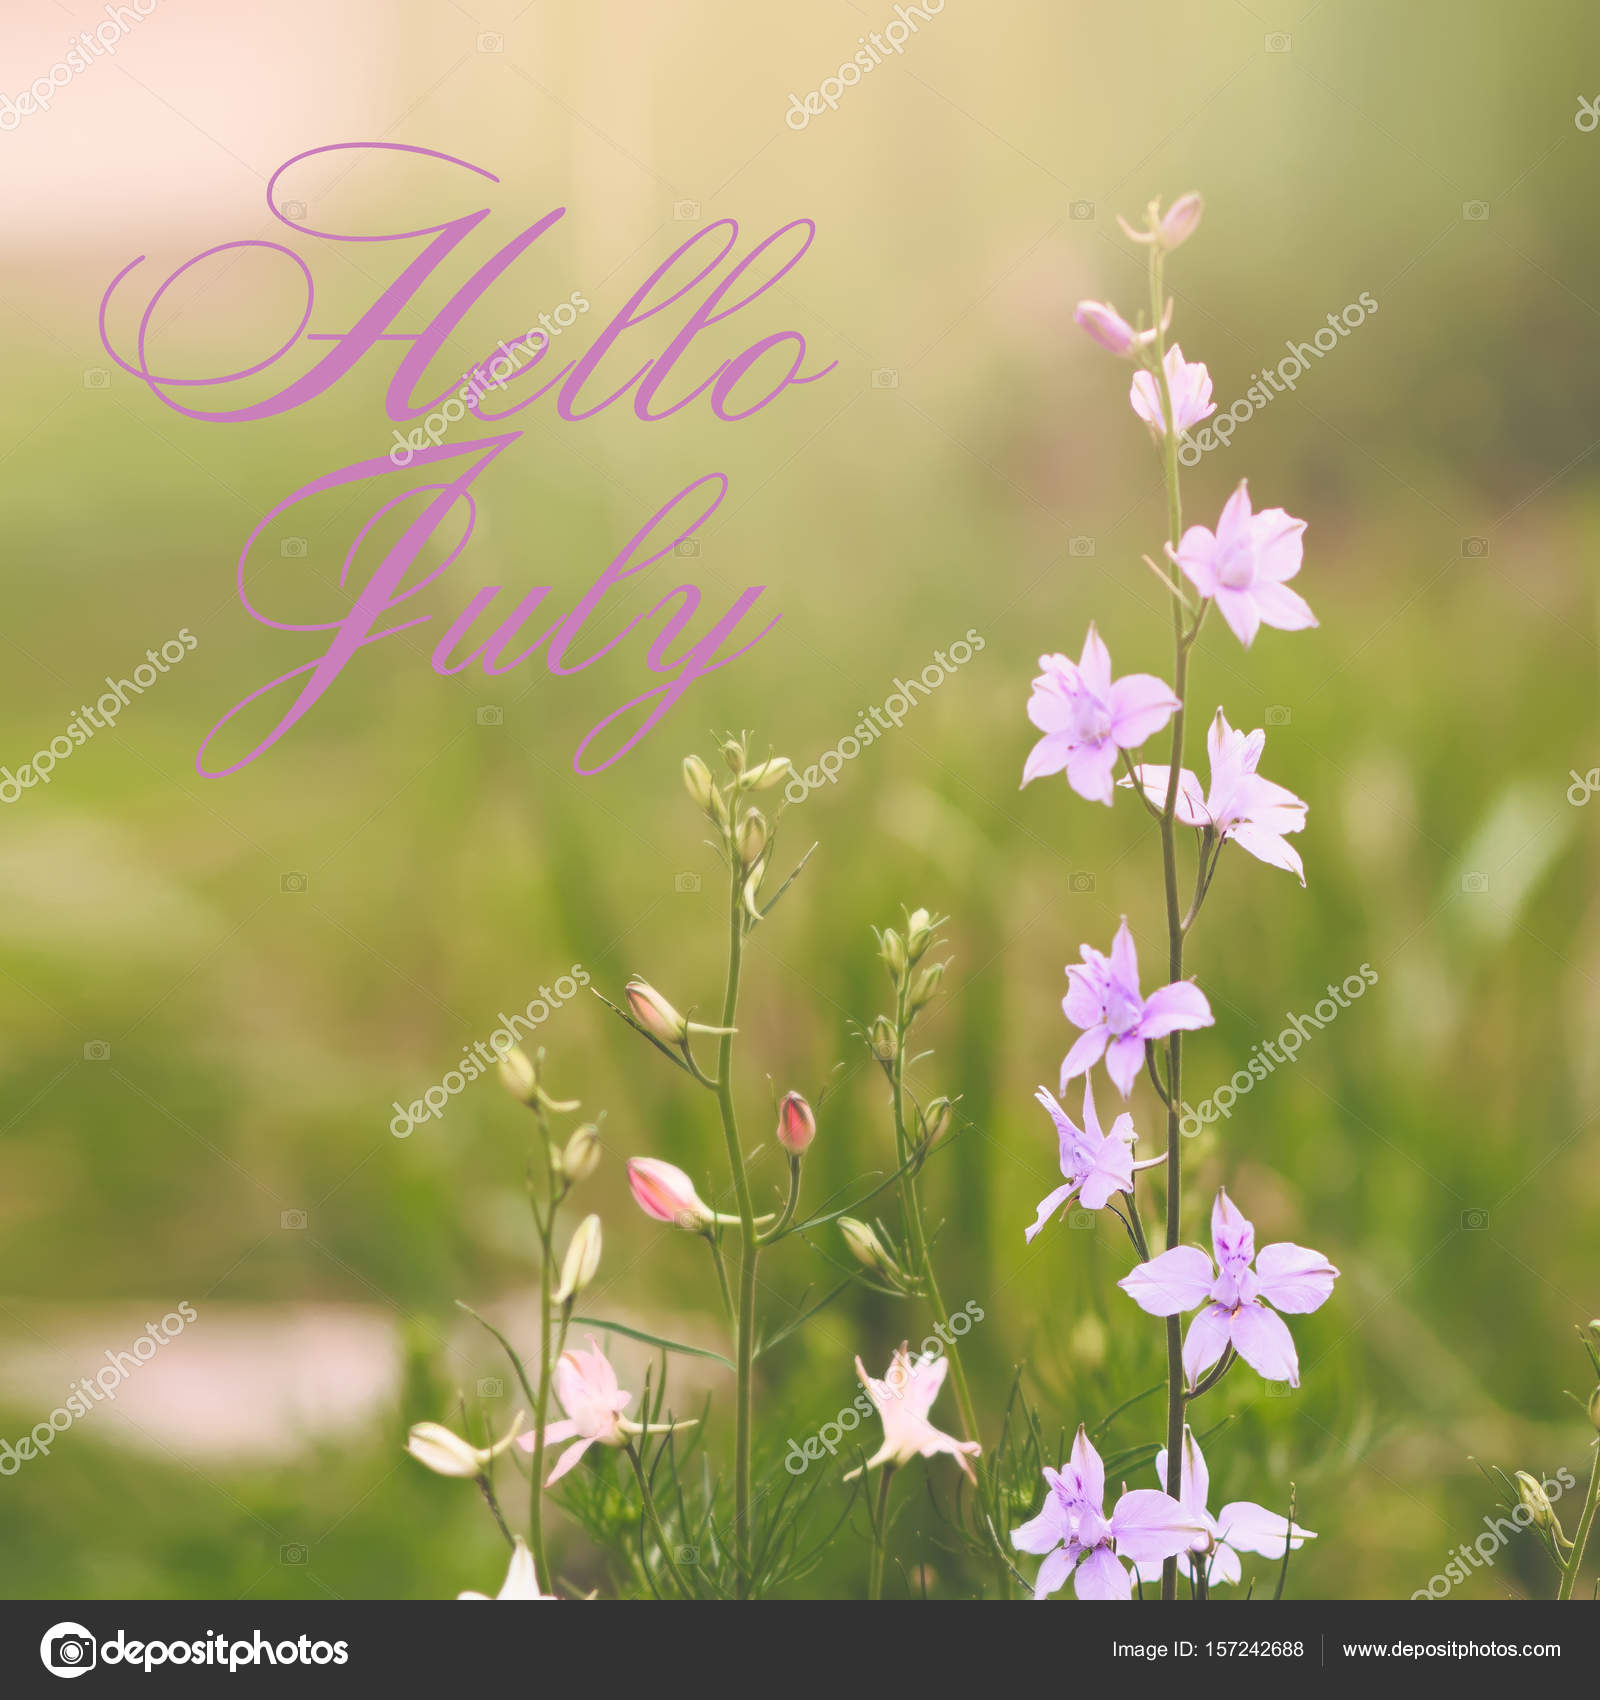 Hello July Greeting Card With Flowers In Background U2014 Stock Photo